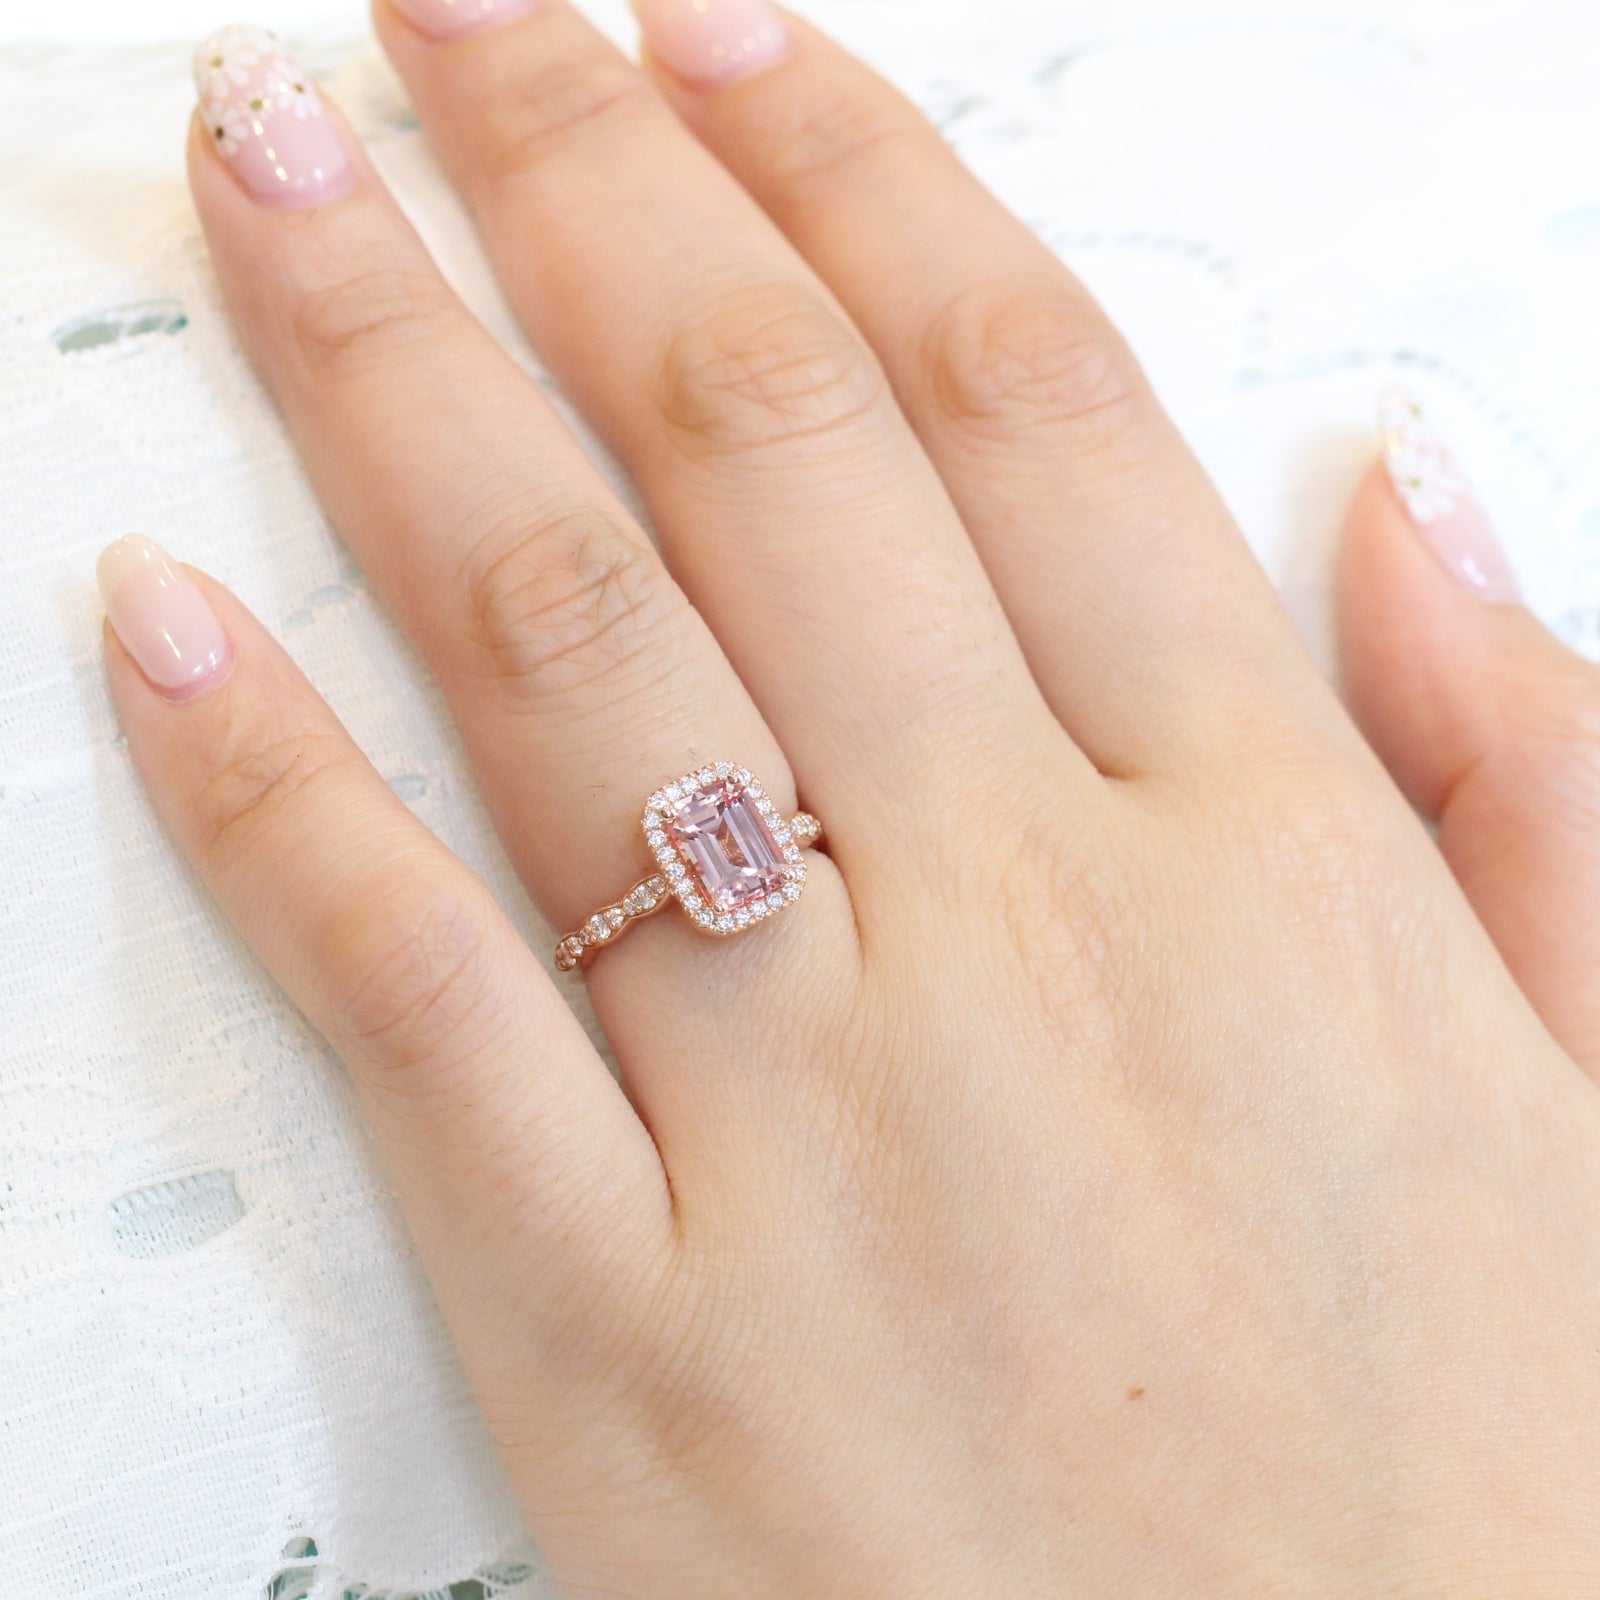 Details about  /2.15 Carat Cushion Cut Peach Sapphire Halo Engagement Ring 14K Rose Gold Plated